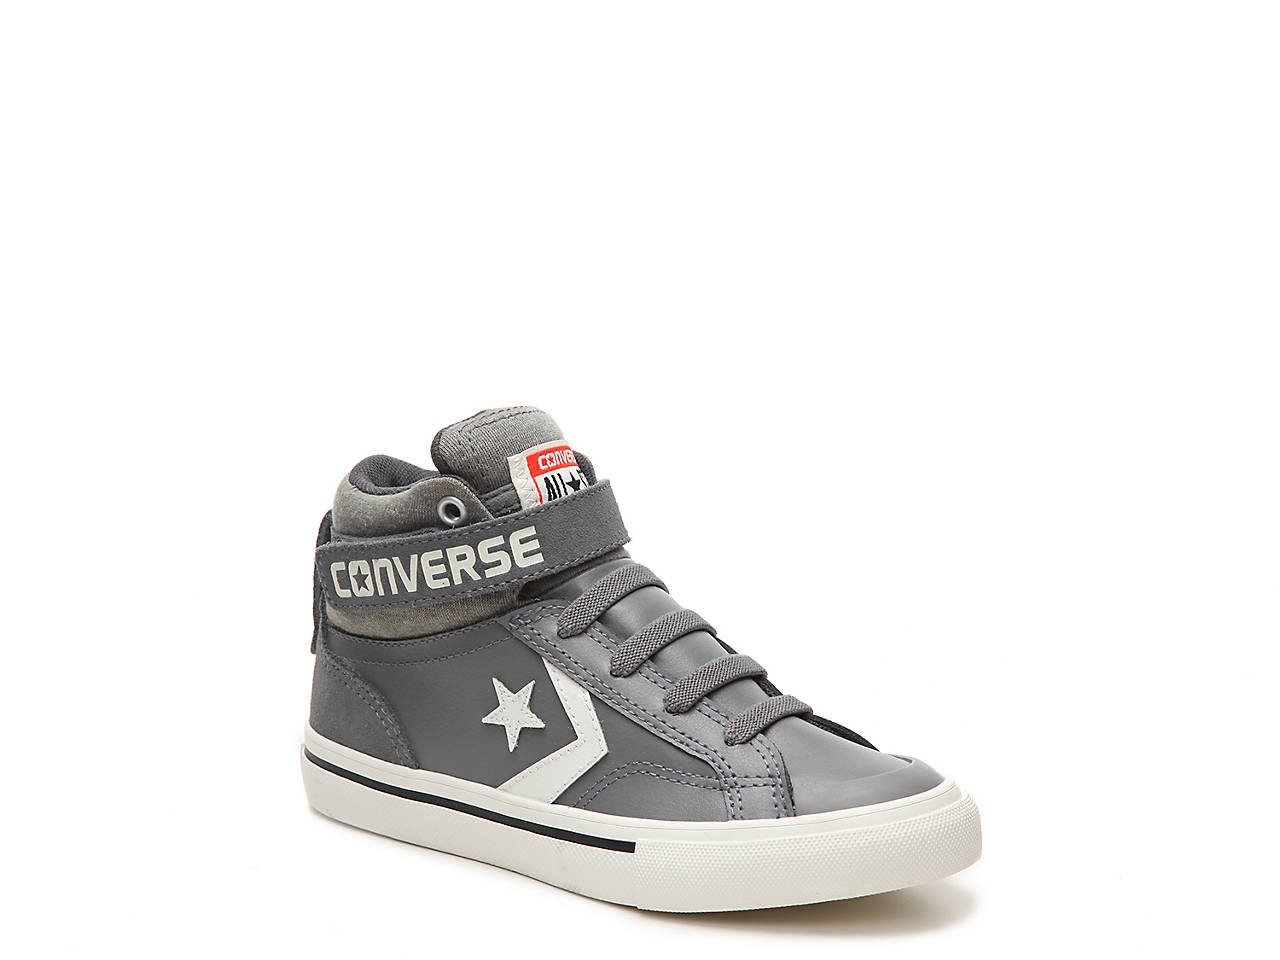 a2420fc8d1d4 Converse Chuck Taylor All Star Pro Blaze Toddler   Youth High-Top Sneaker  Kids Shoes